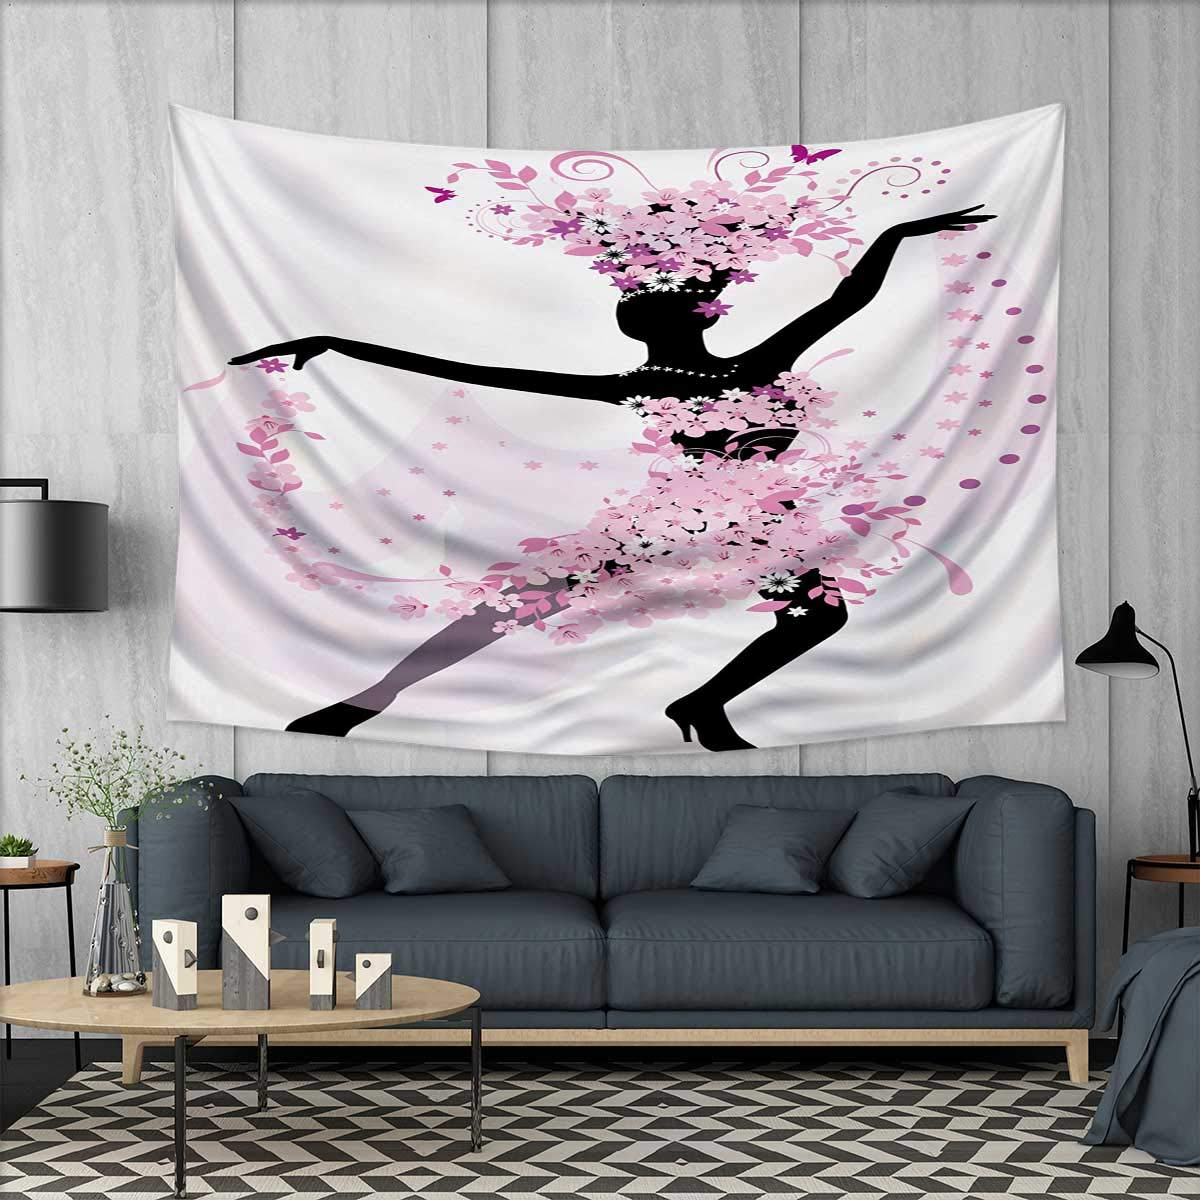 Anhuthree Latin Wall Tapestry Silhouette of a Woman Dancing Samba Salsa Latin Dances Spain and Mexico Culture Print Home Decorations for Living Room Bedroom 80''x60'' Pink Black